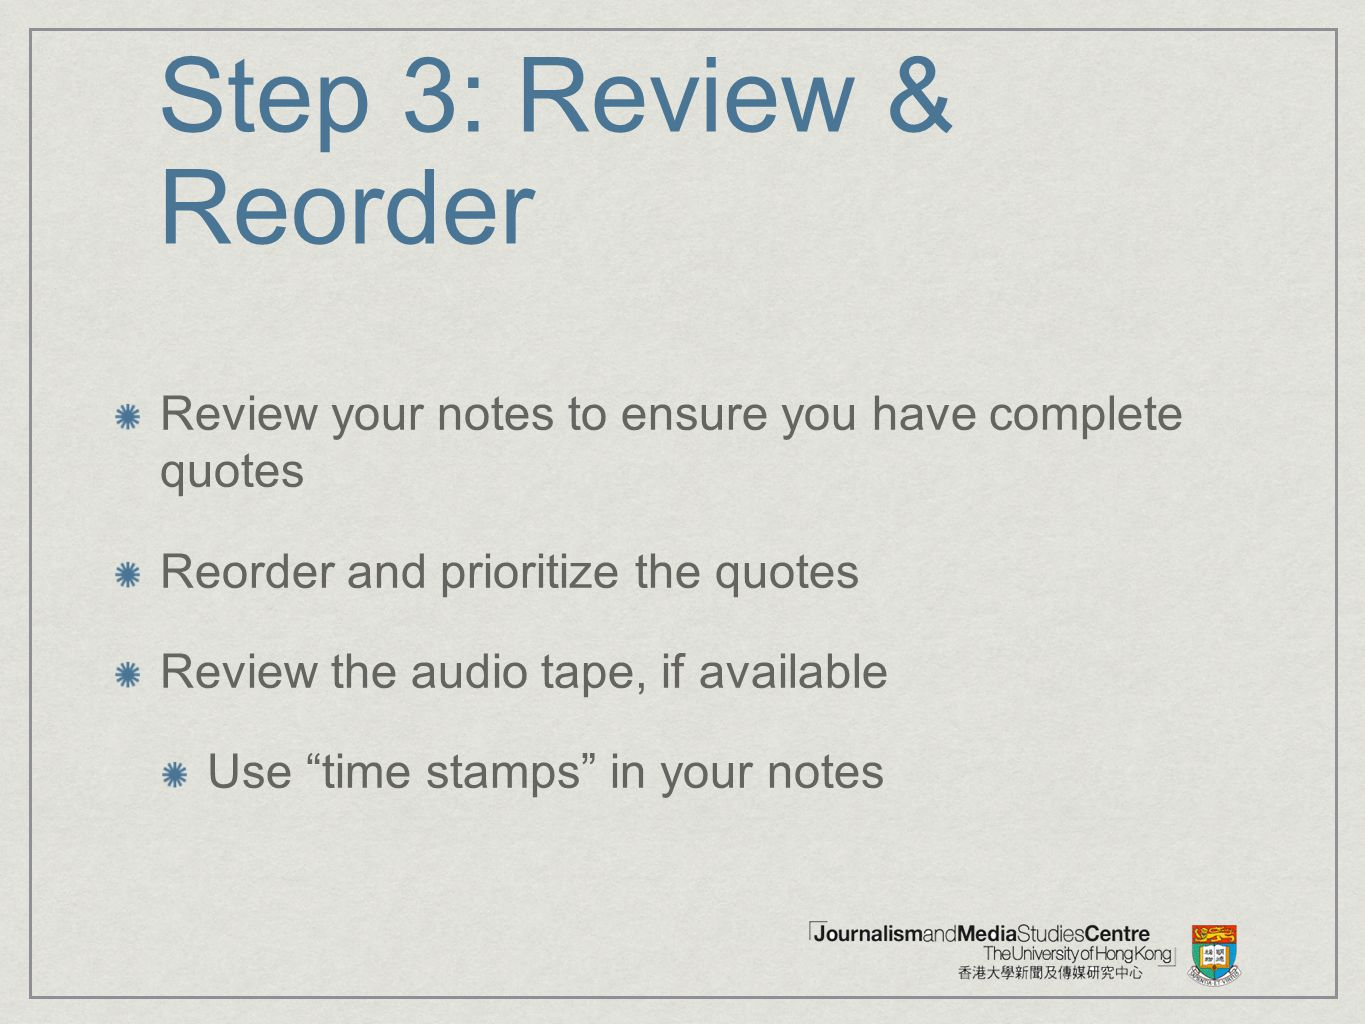 Step 3: Review & Reorder Review your notes to ensure you have complete quotes. Reorder and prioritize the quotes.